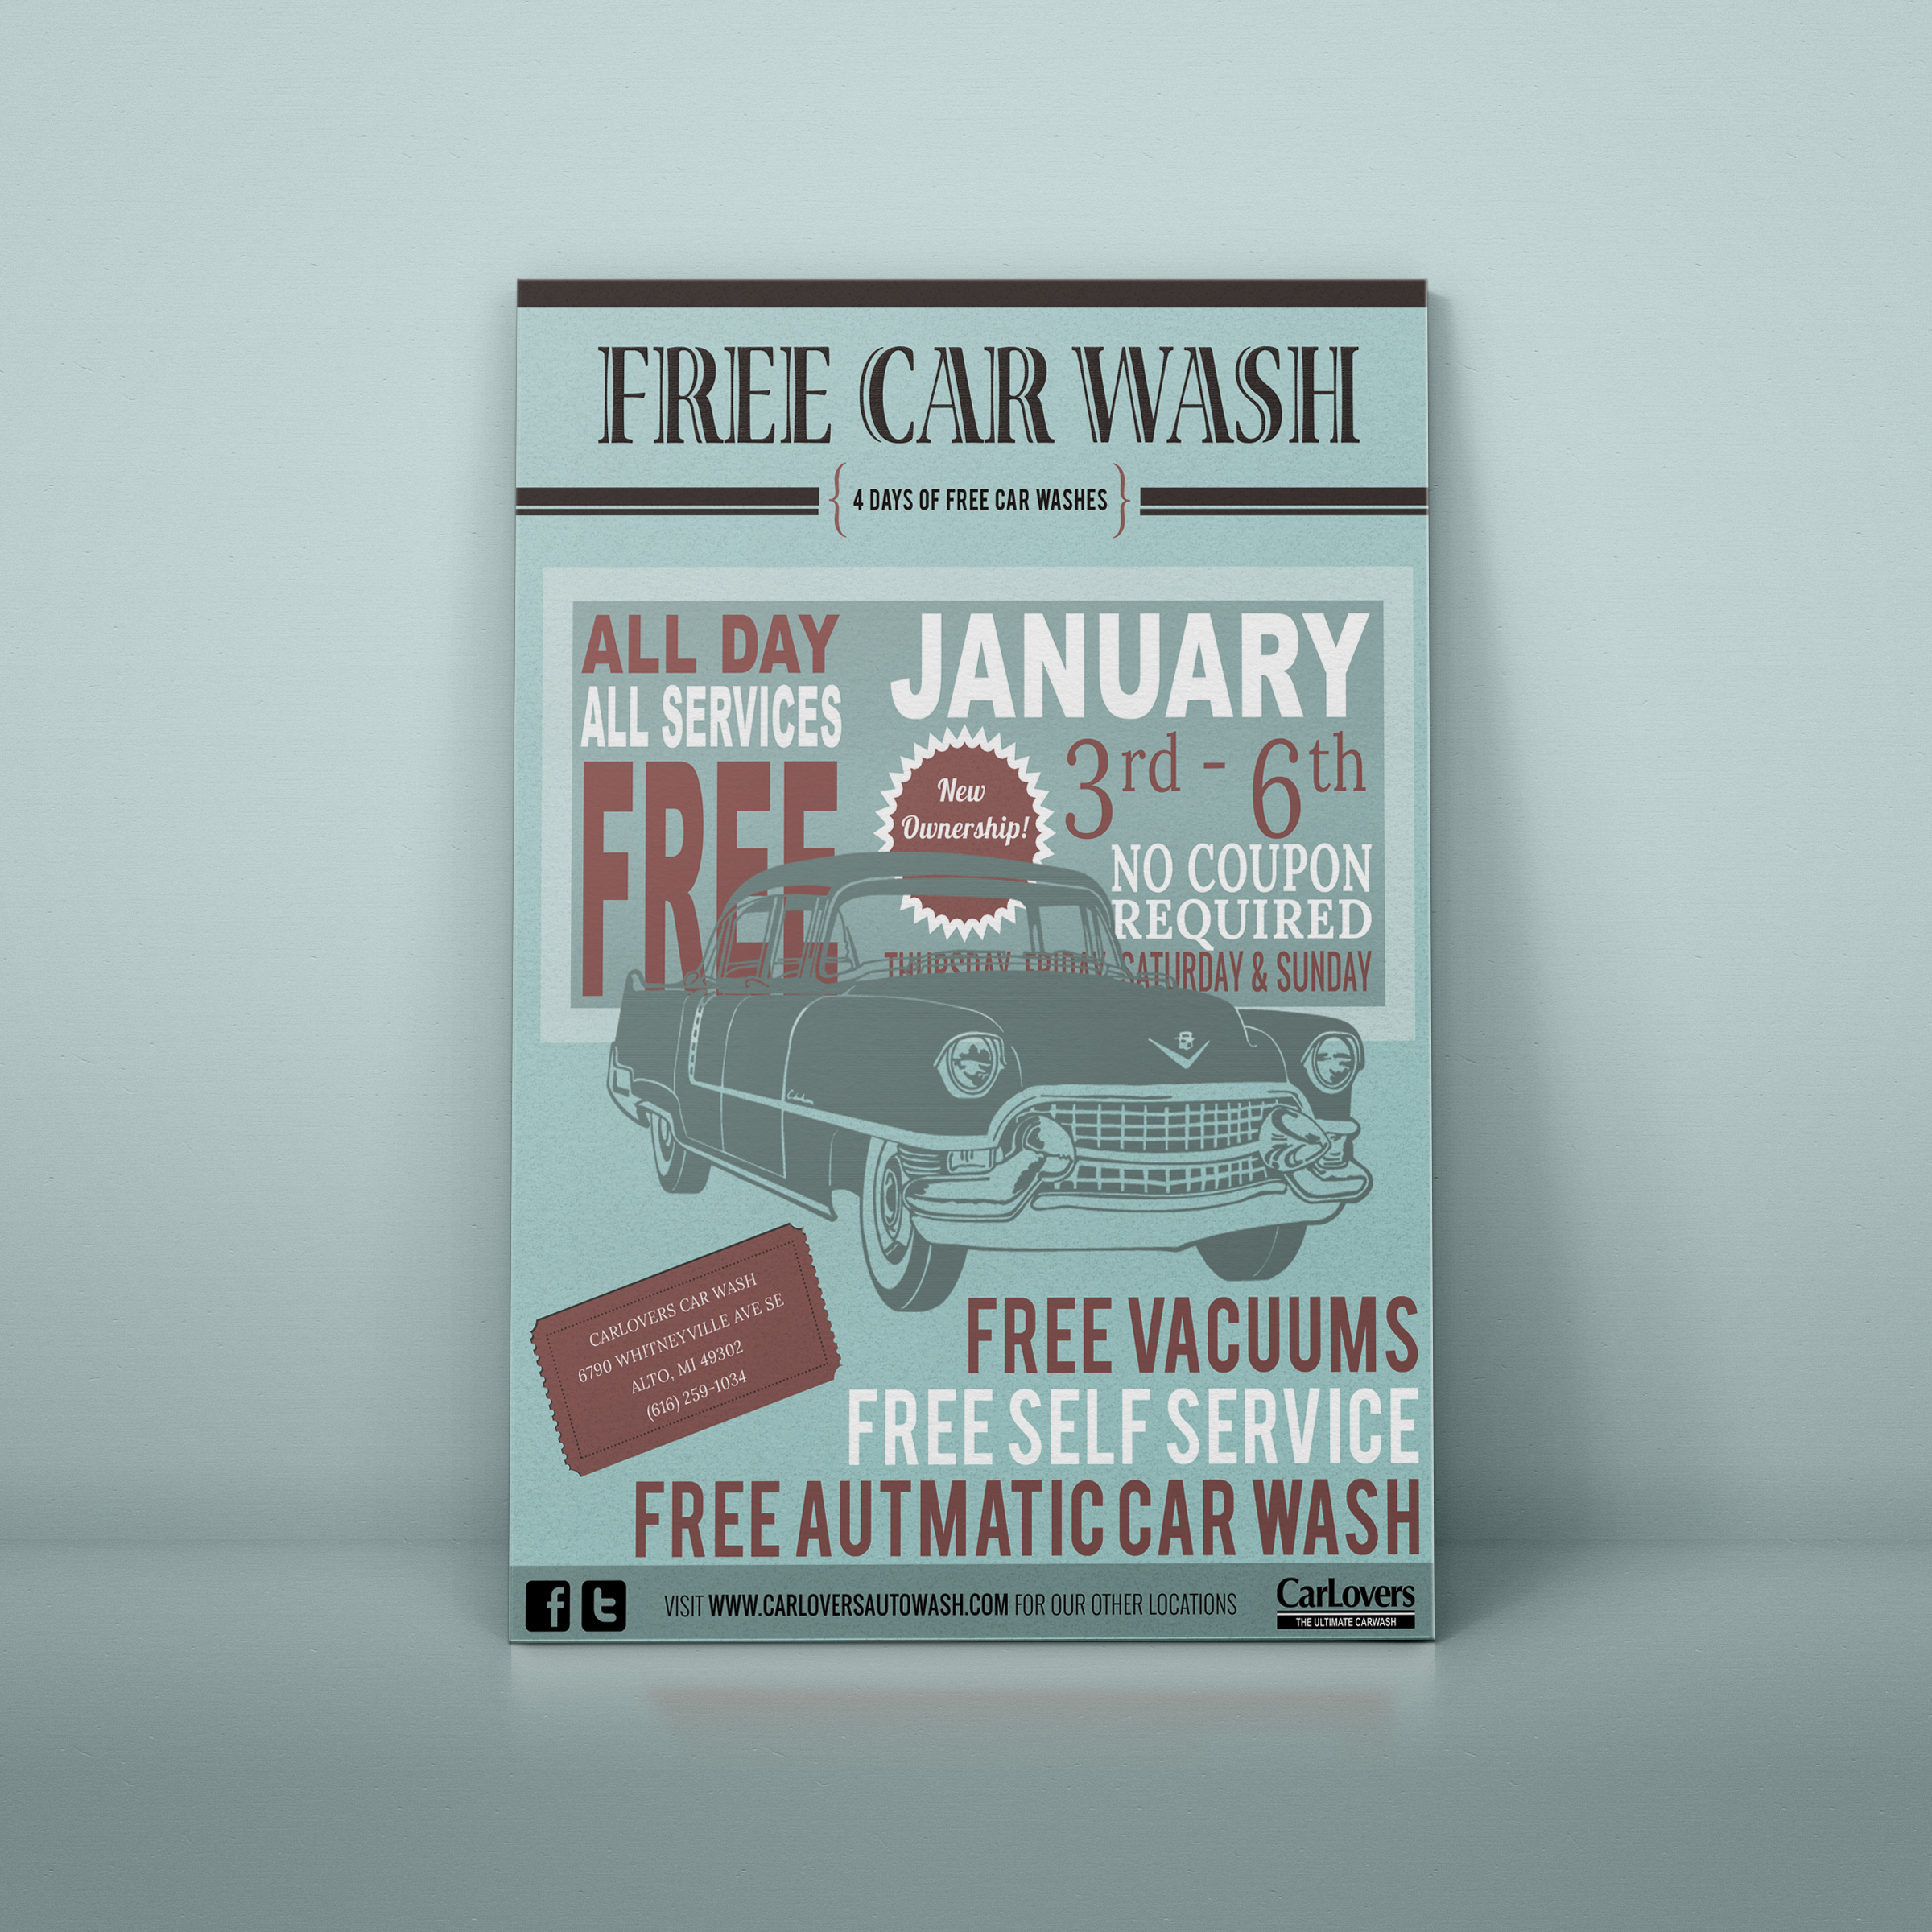 Carlovers Car Wash promotional event postcard designed by Xoil Design